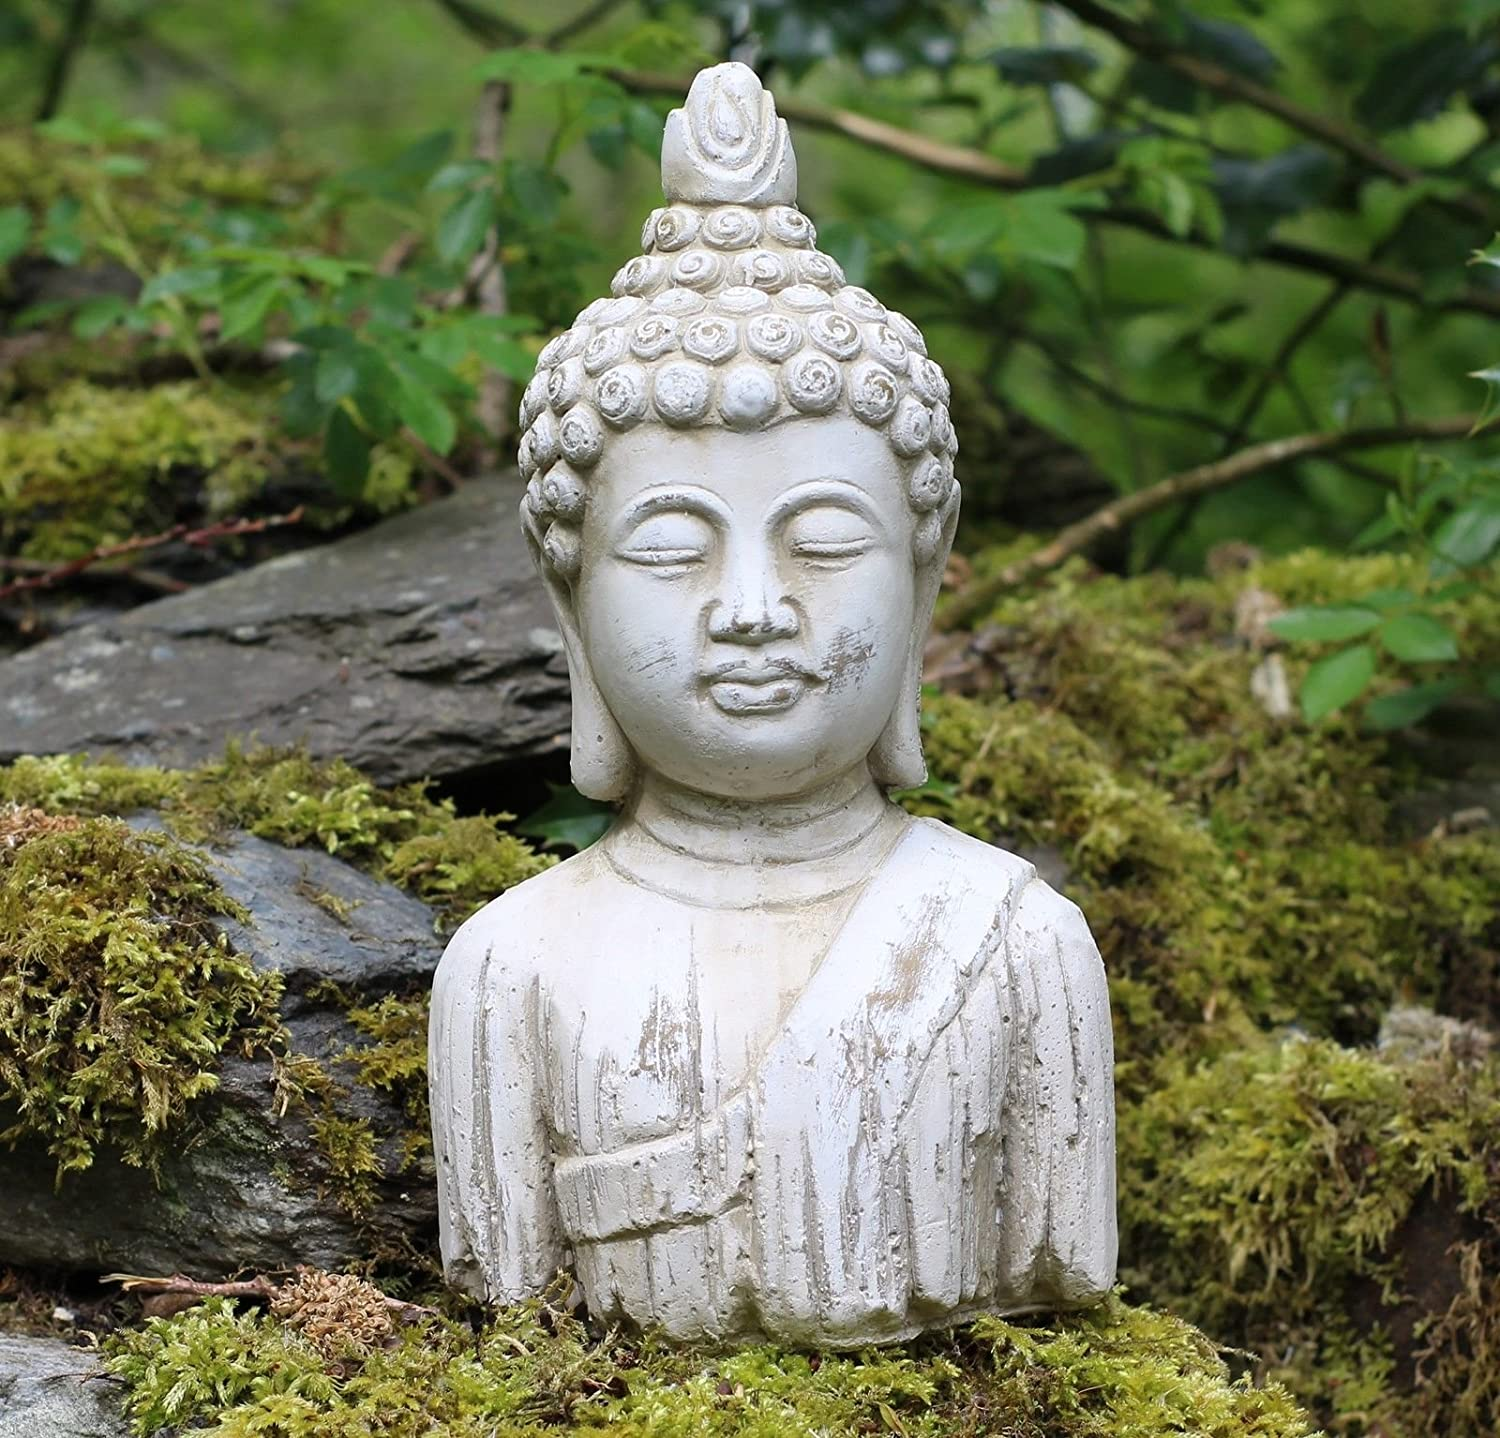 Buddha bust Stone Drift Wood Effect Garden Outdoor Indoor Statue Ornament Home and Garden Products Ltd